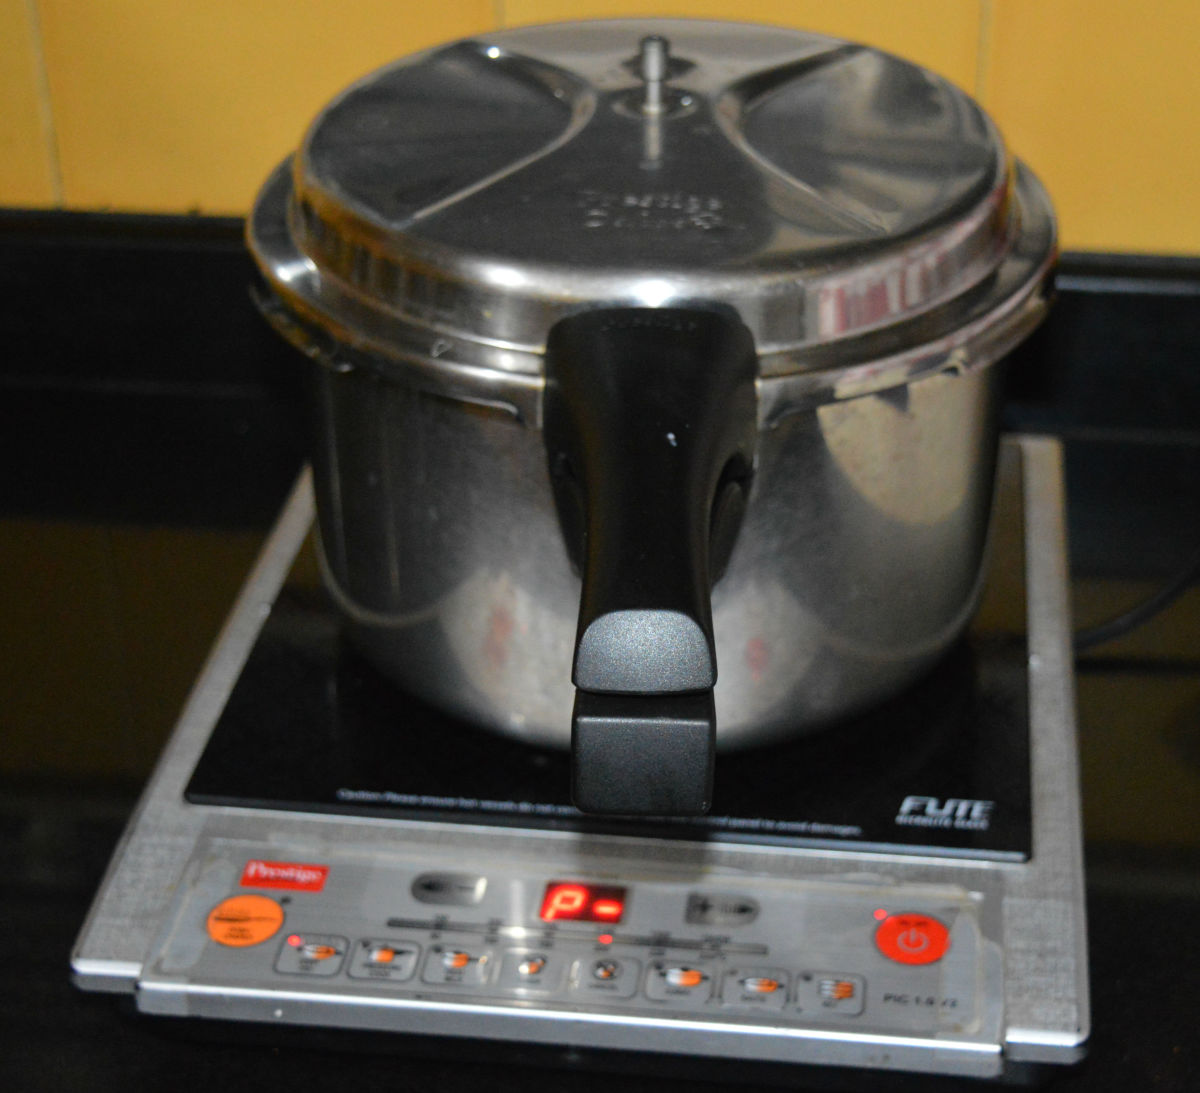 The cooker with the idli stand inside. Set the heat on medium-high. Steam-cook up to 10 or 11 minutes. Next, turn off the heat. Open the lid after 2 to 3 minutes.